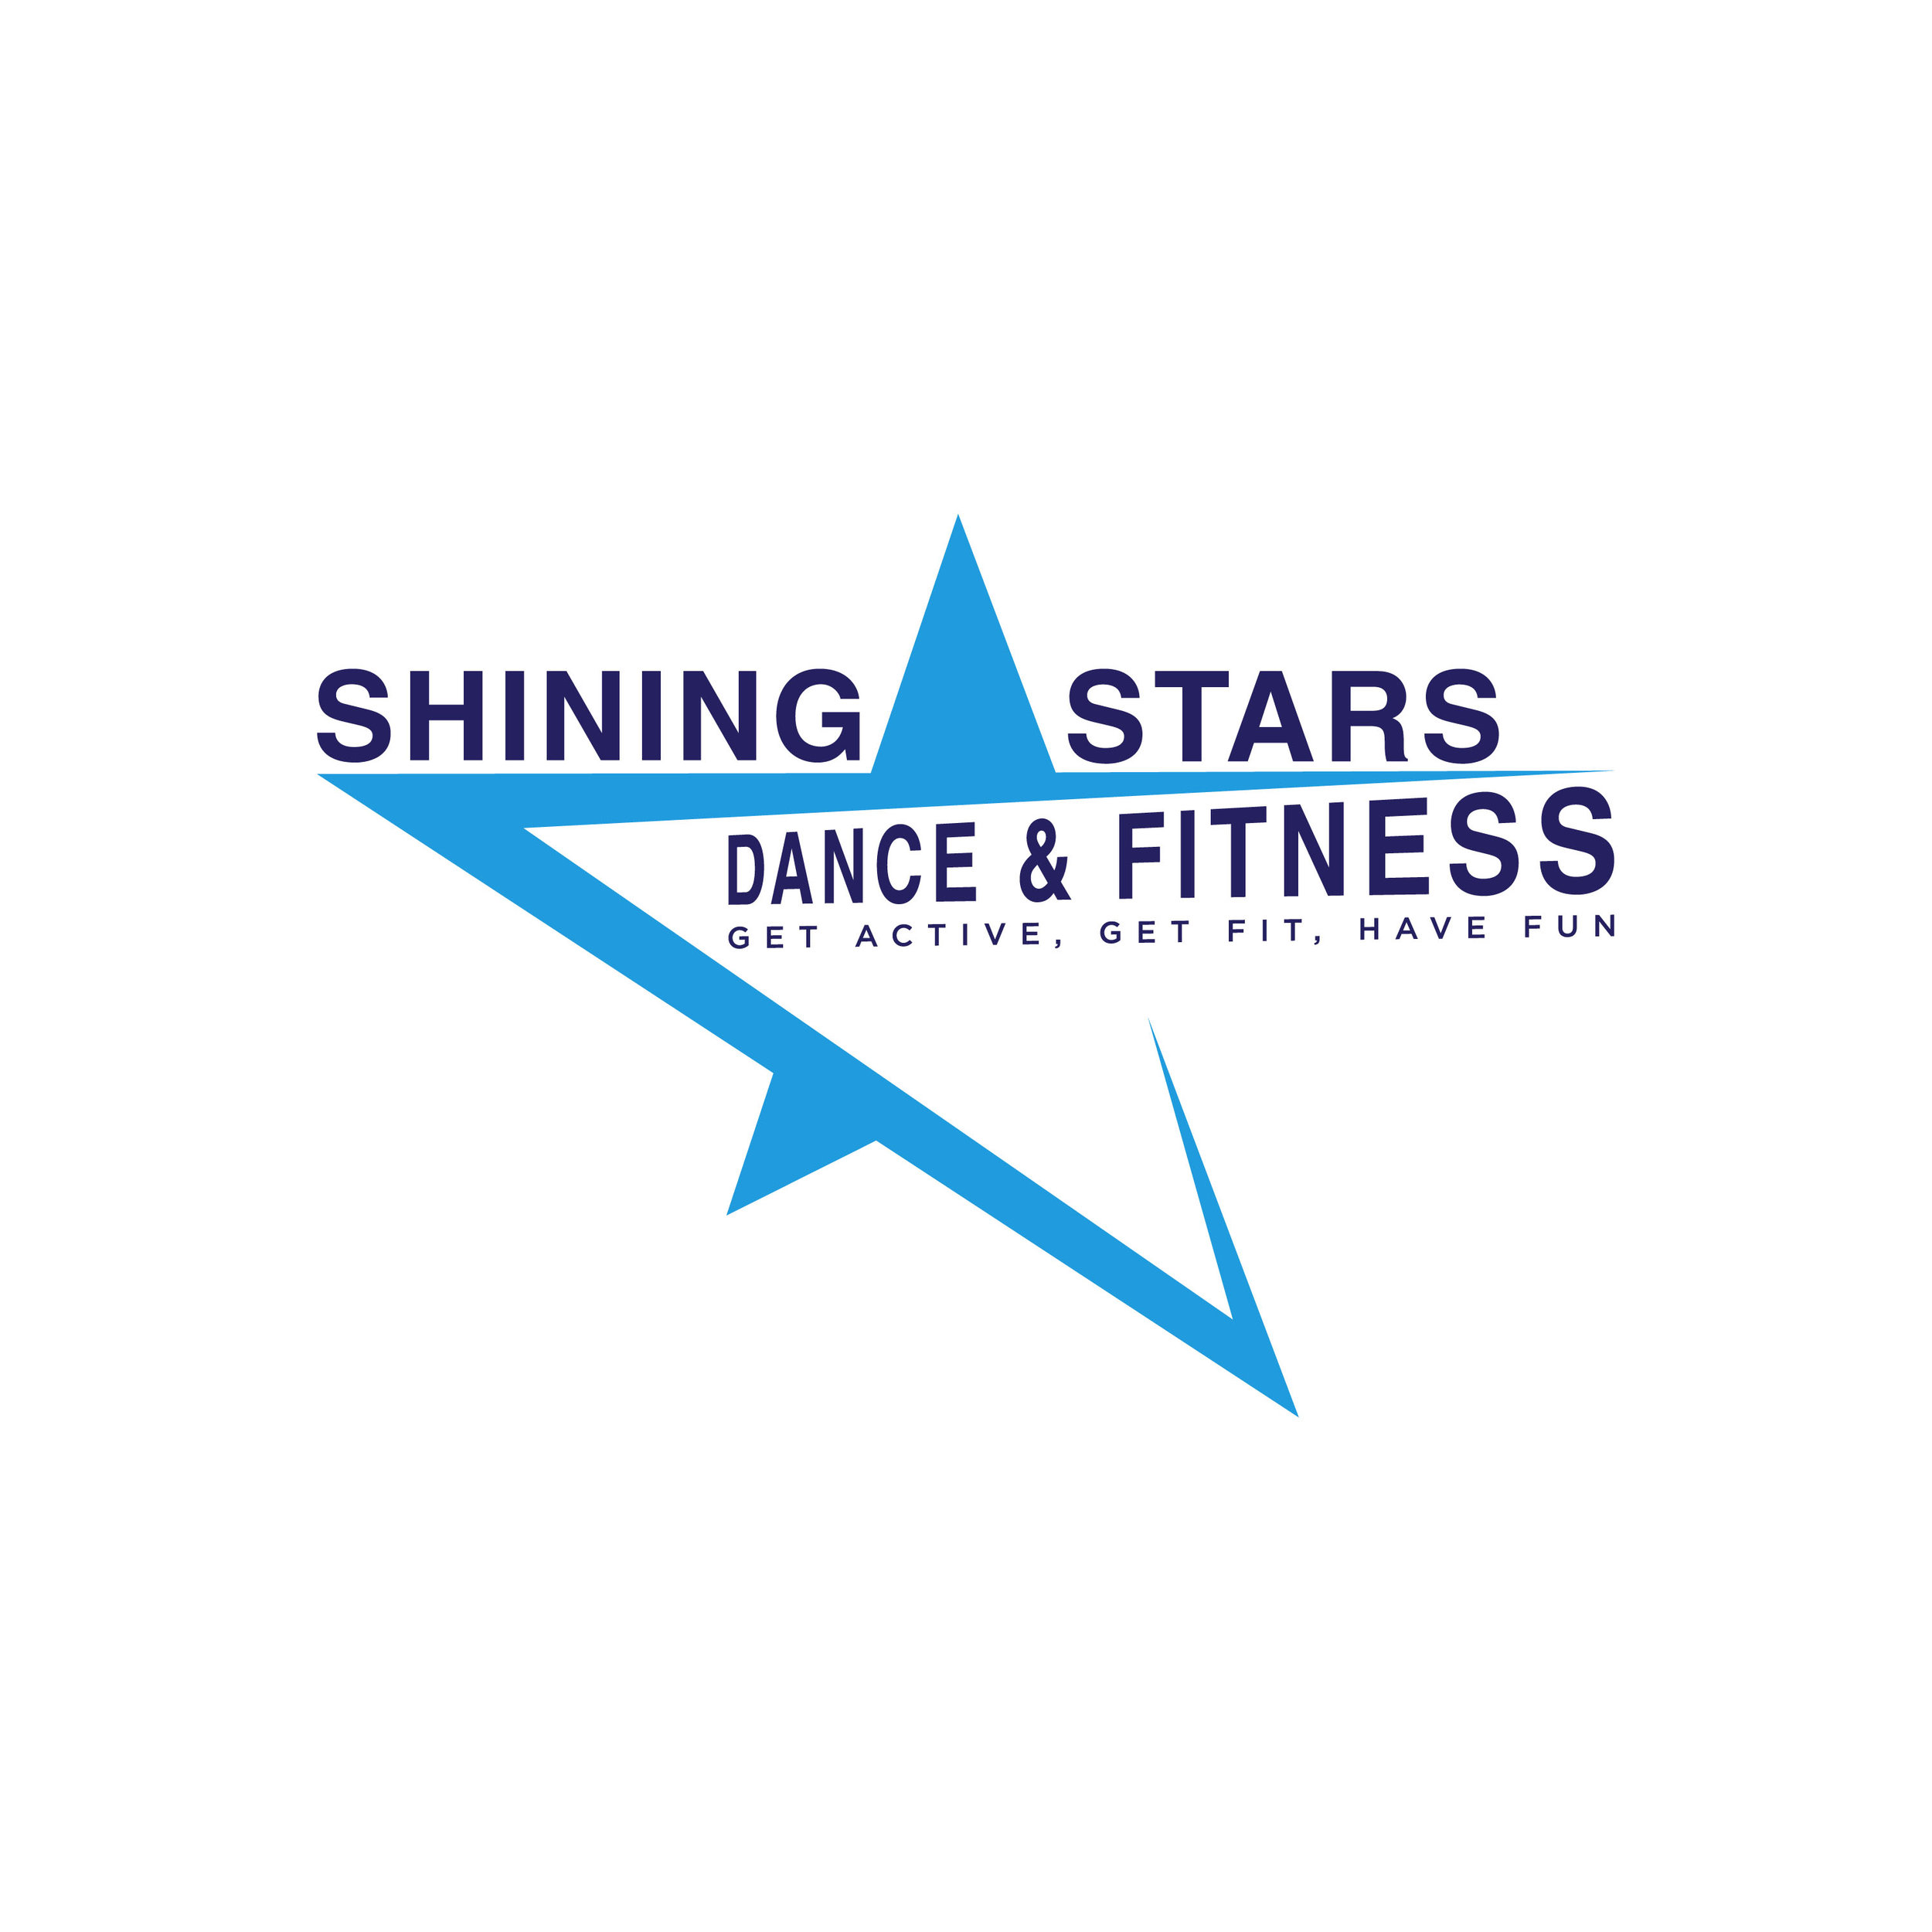 994_Shining Stars Dance & Fitness_A_02.jpg